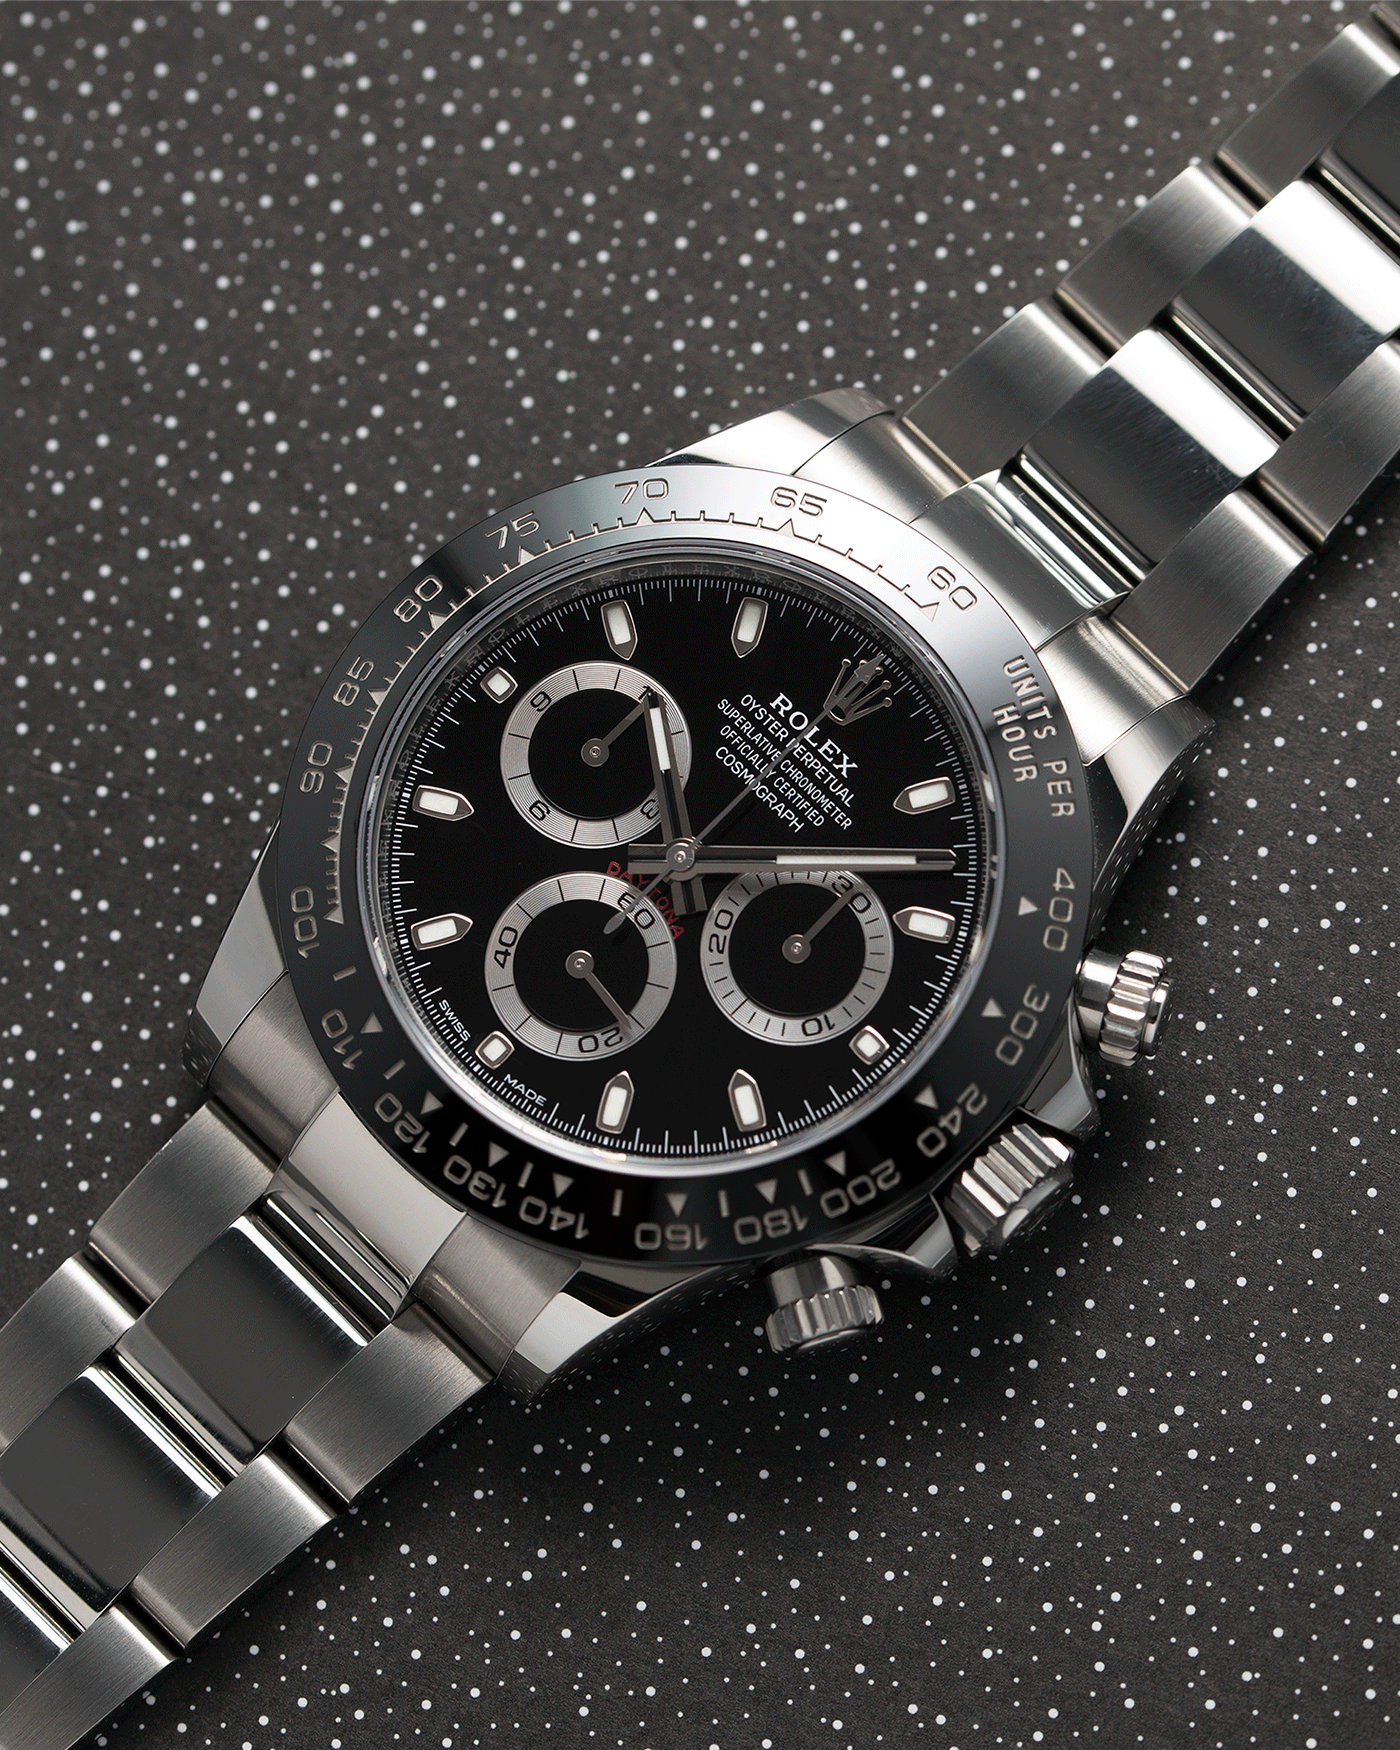 Brand: Rolex Year: 2019 Model: Daytona Reference: 116500 Material: Stainless Steel Movement: Calibre 4130 Case Diameter: 40mm Strap: Stainless Steel Rolex Oyster Bracelet